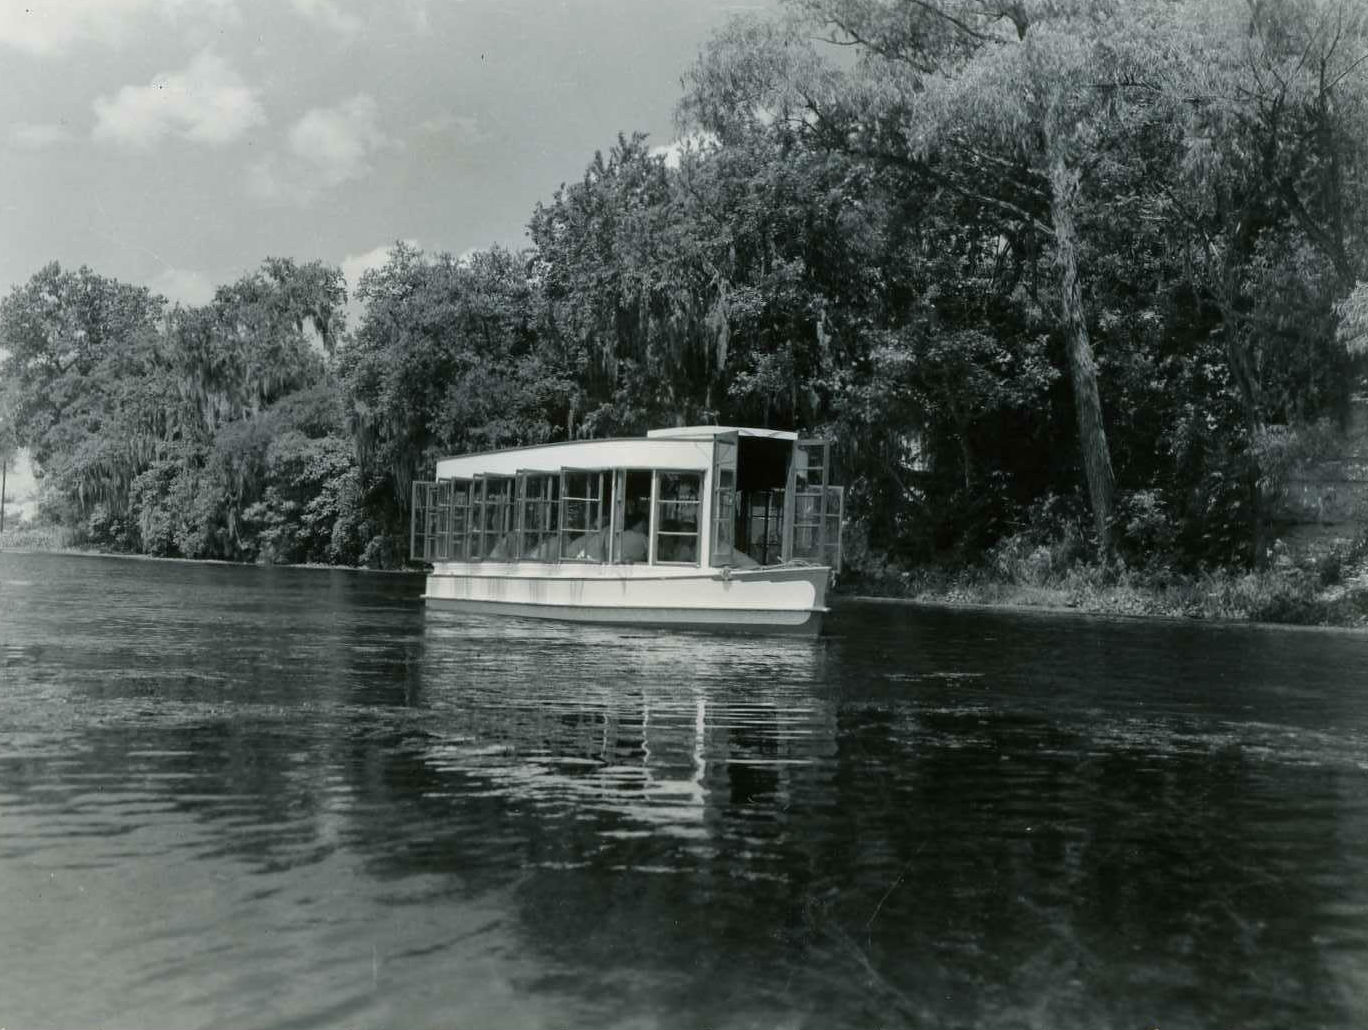 Glass bottom boat travels over spring lake at aquarena springs in san marcos texas.jpg